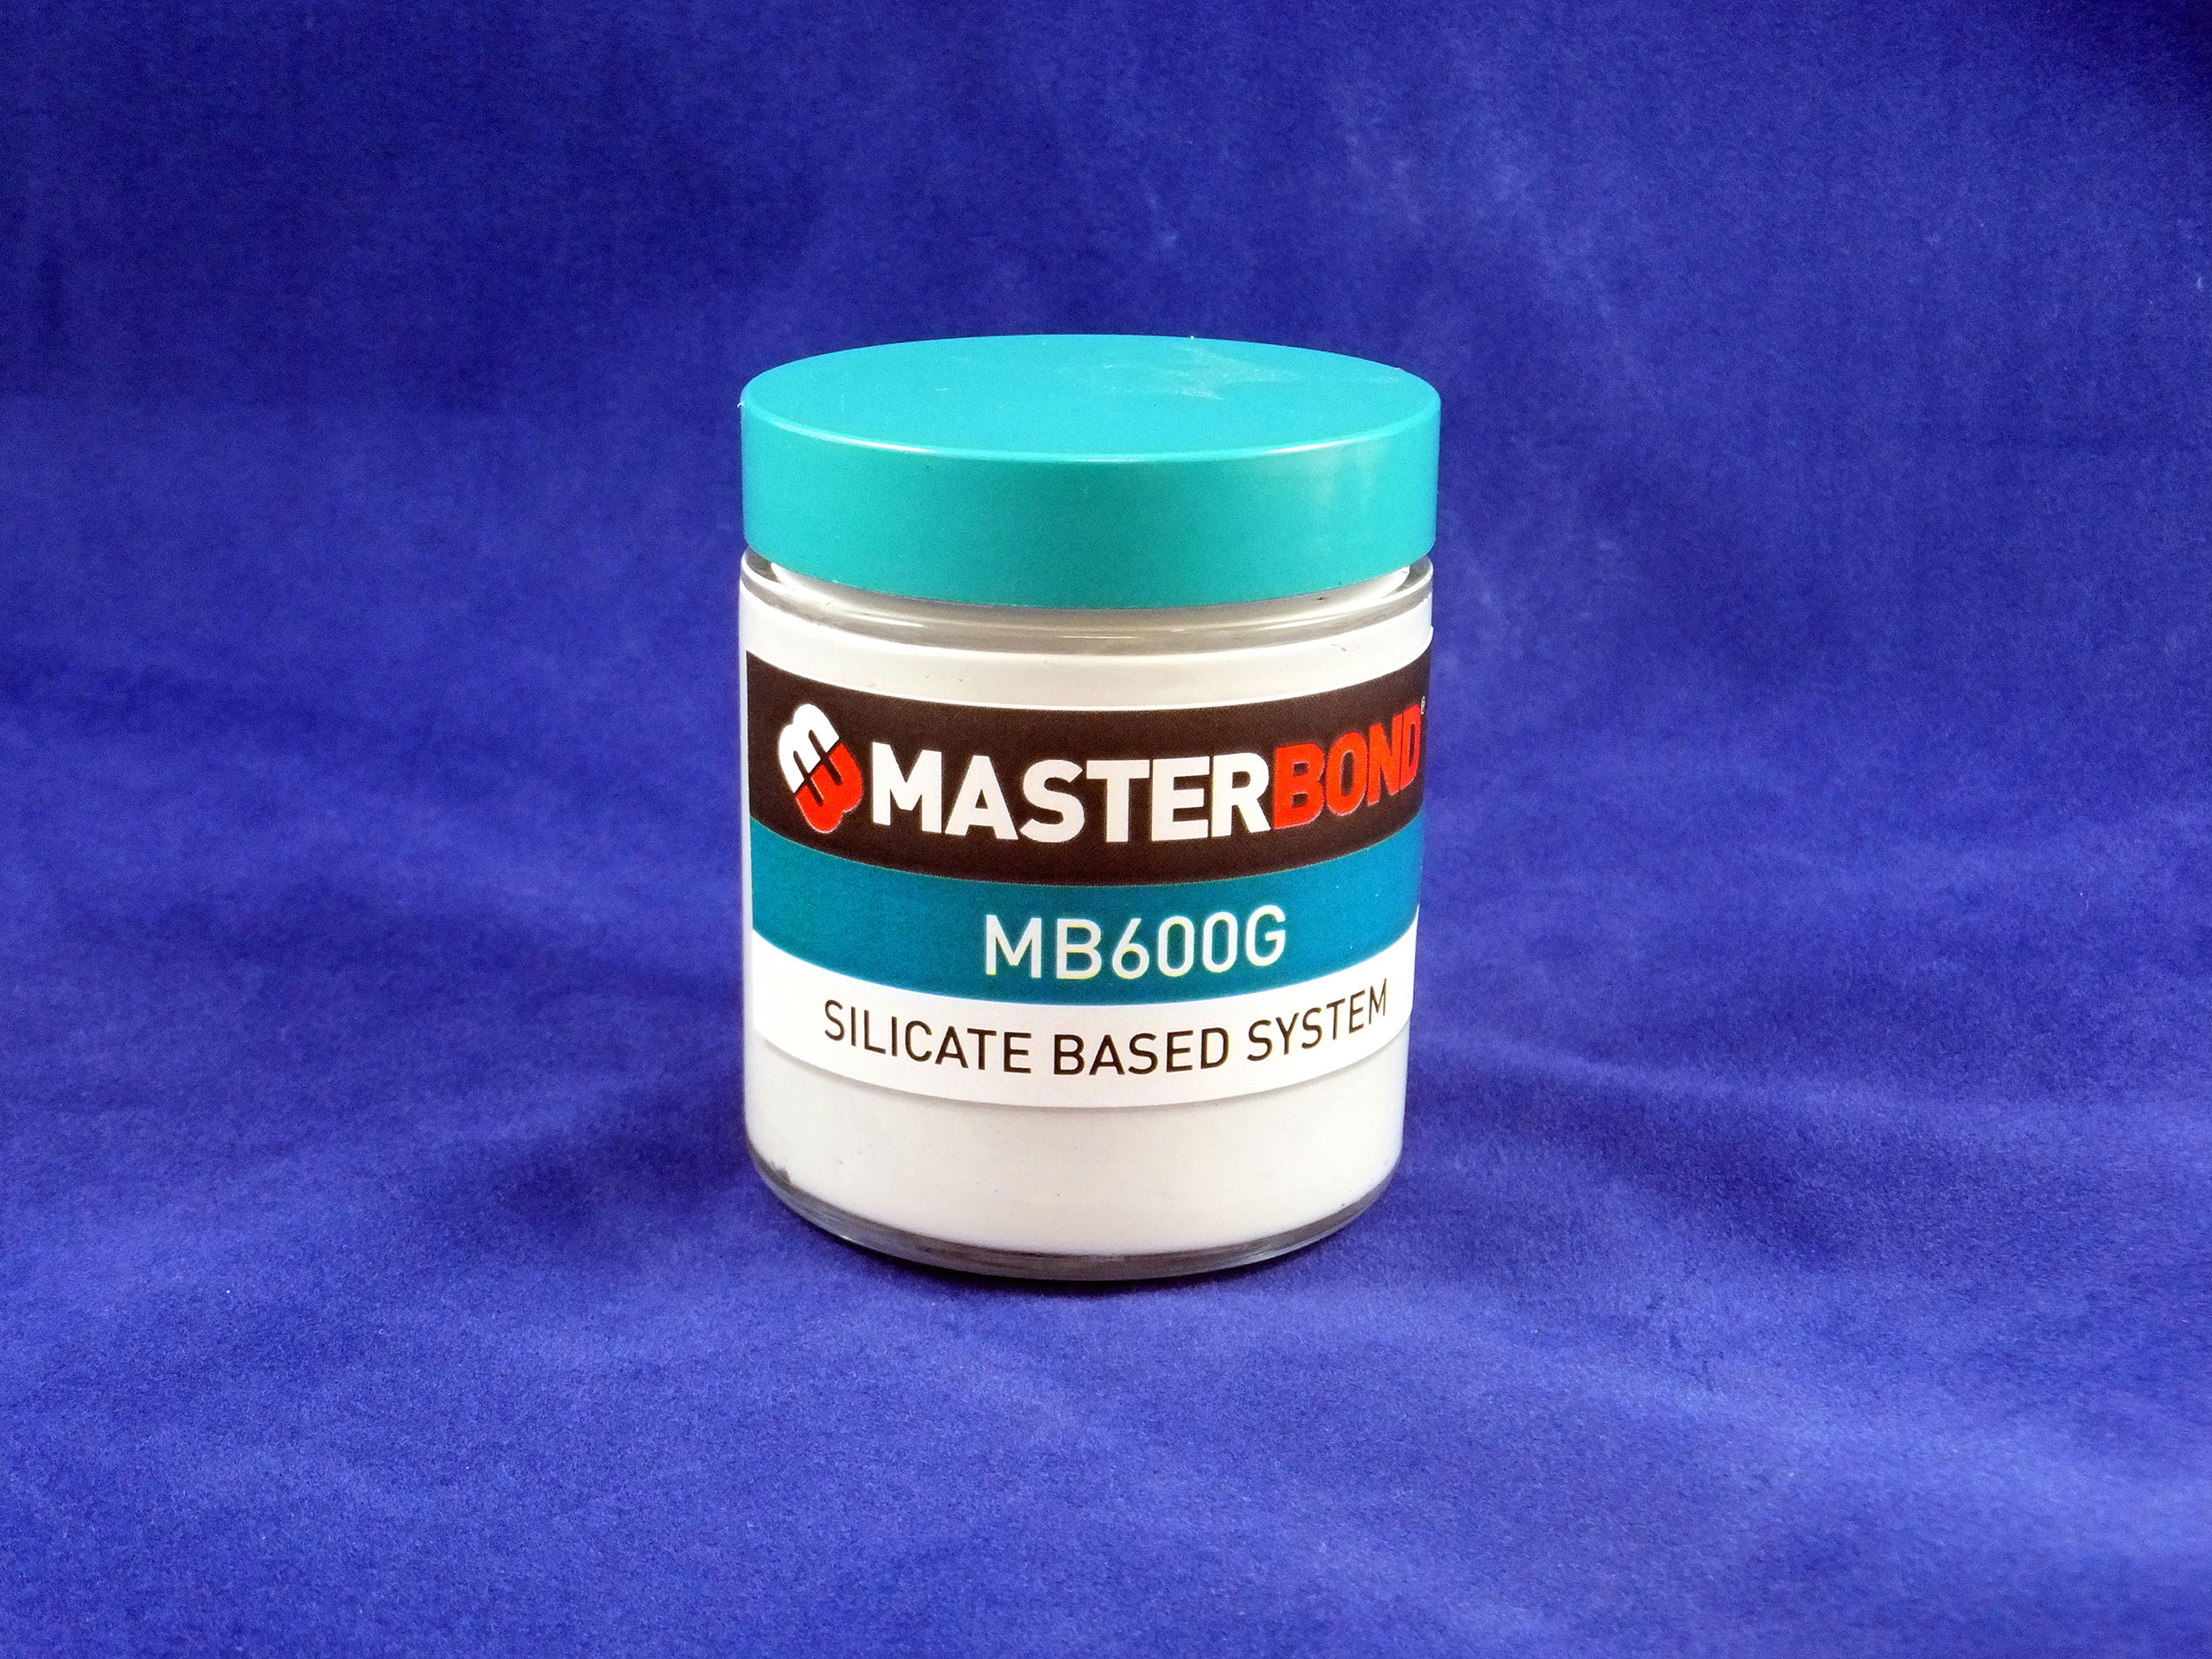 Master Bond Electrically Conductive Adhesives | MasterBond com